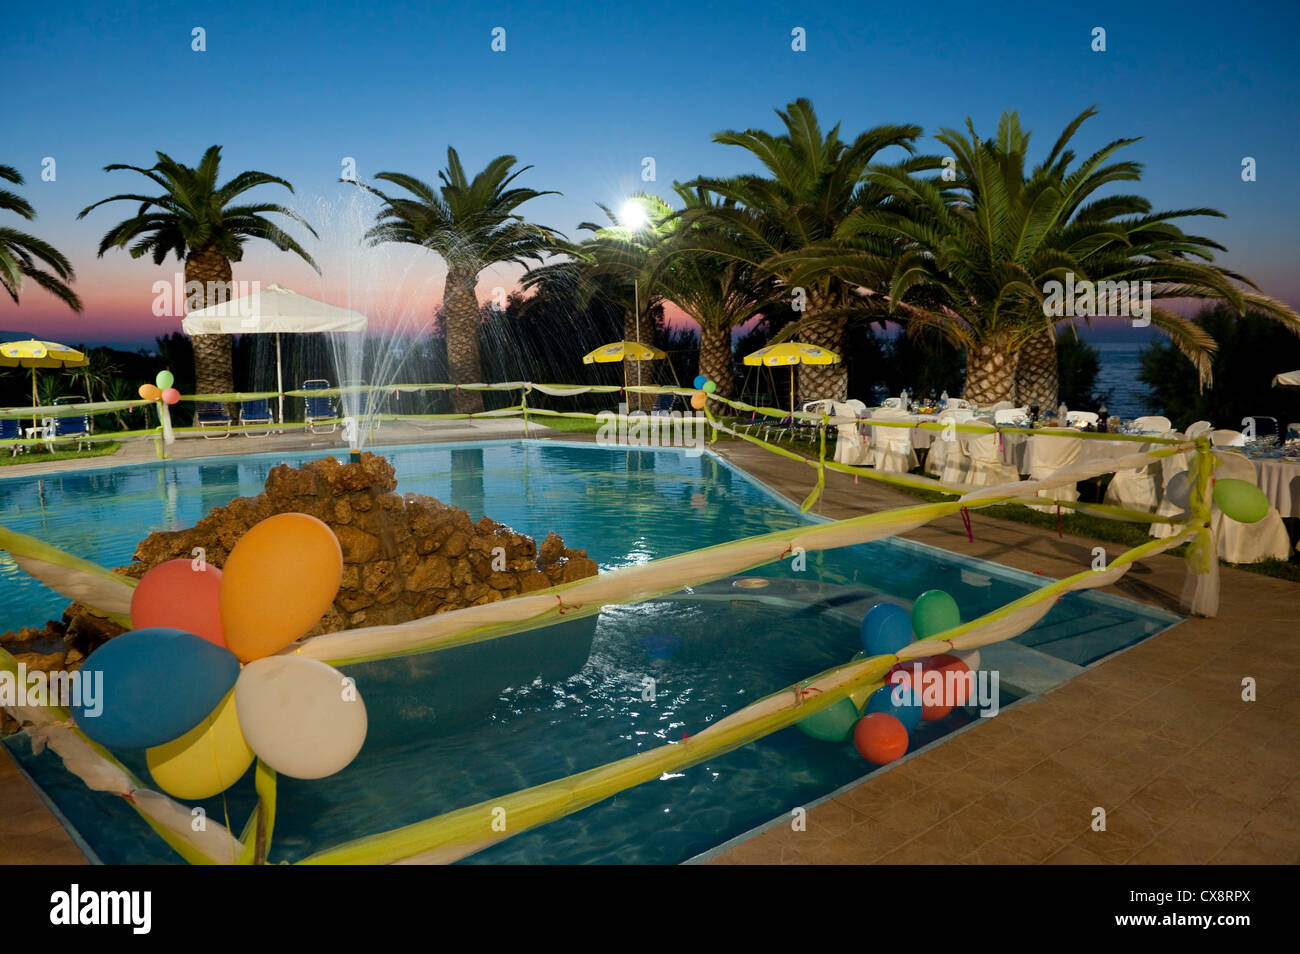 Pool side party at sunset just before the guests arrive - Stock Image